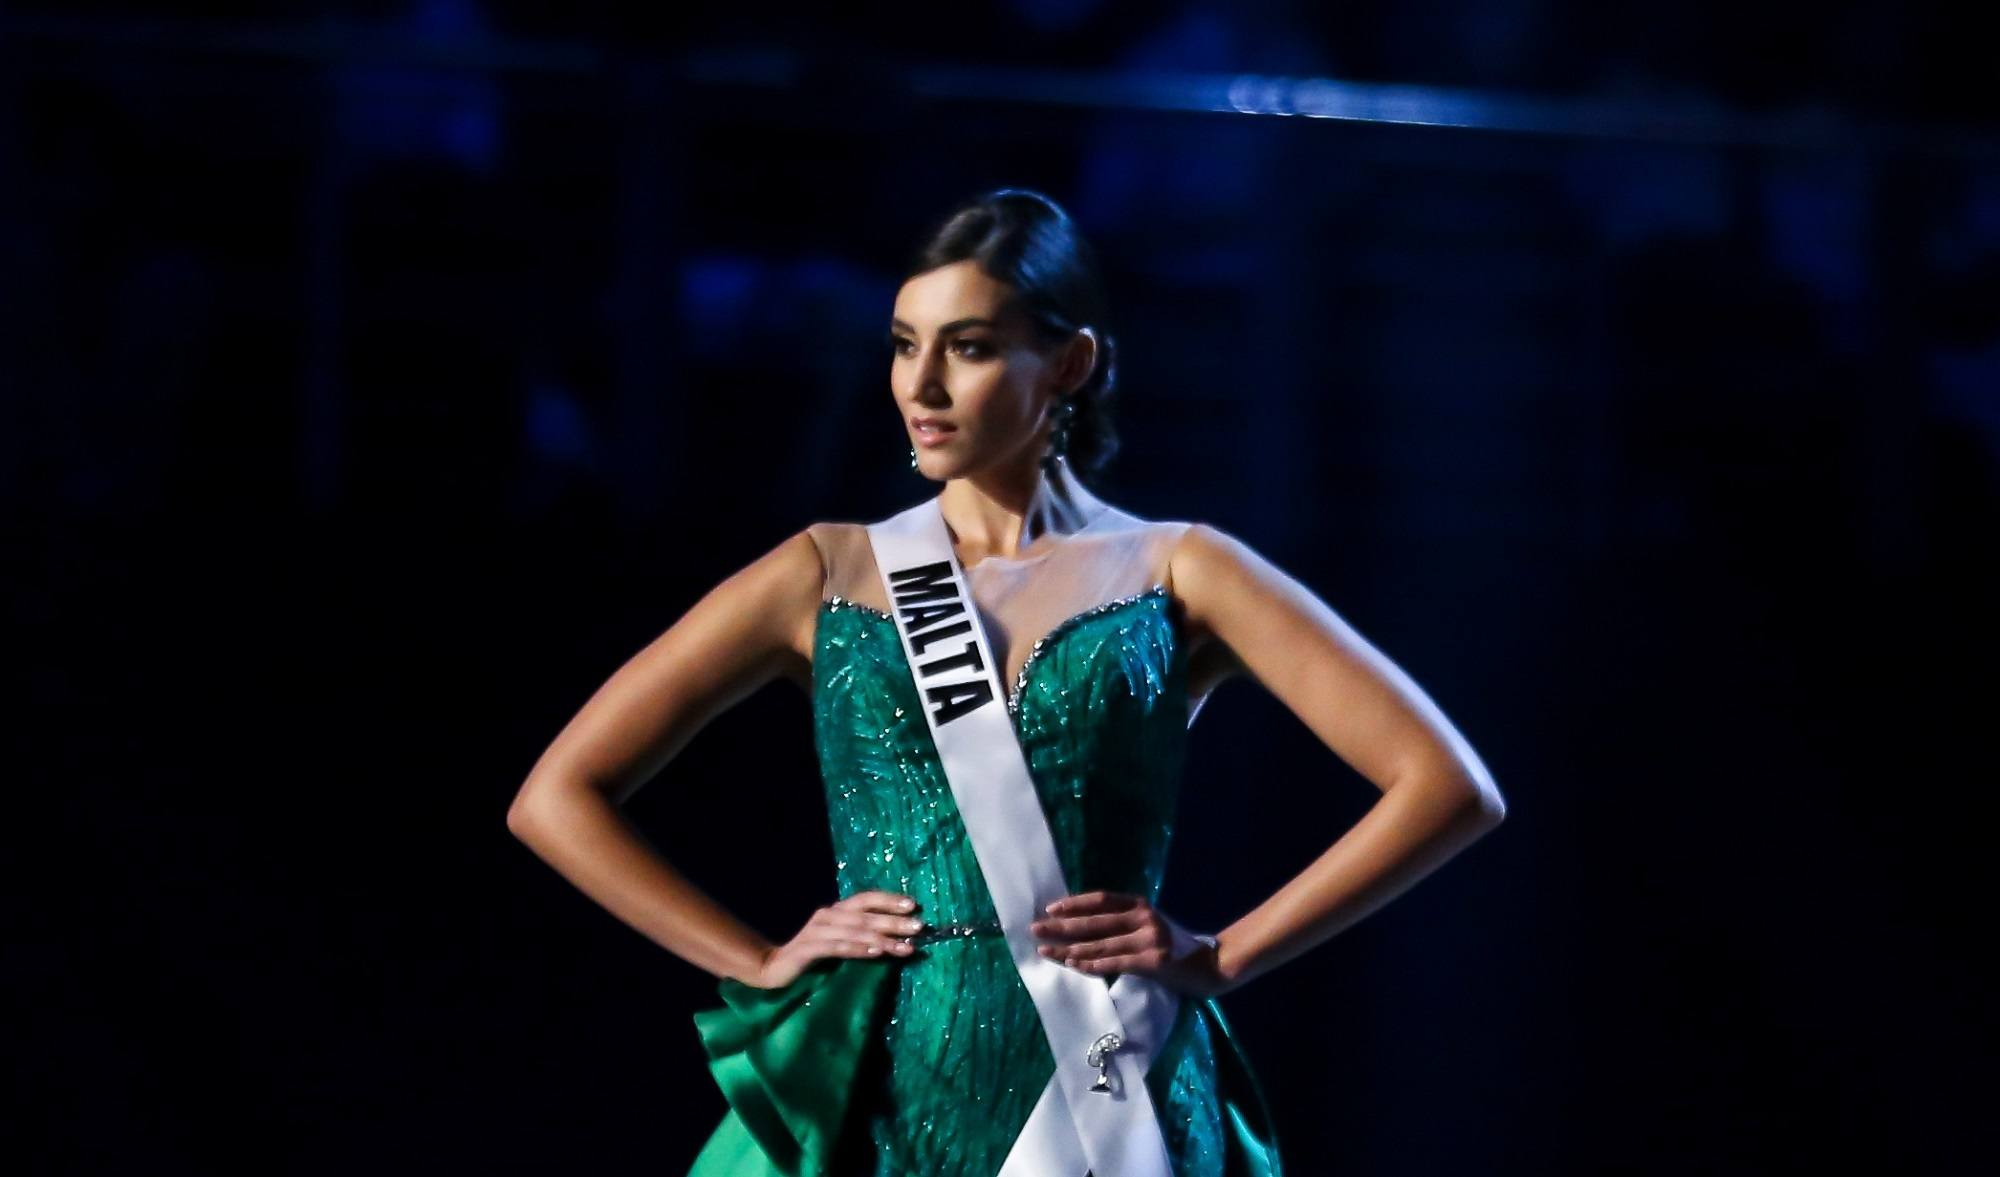 Miss Universe 2018 hairstyles: Miss Malta Francesca Mifsud with black hair in chignon wearing a green evening gown on stage